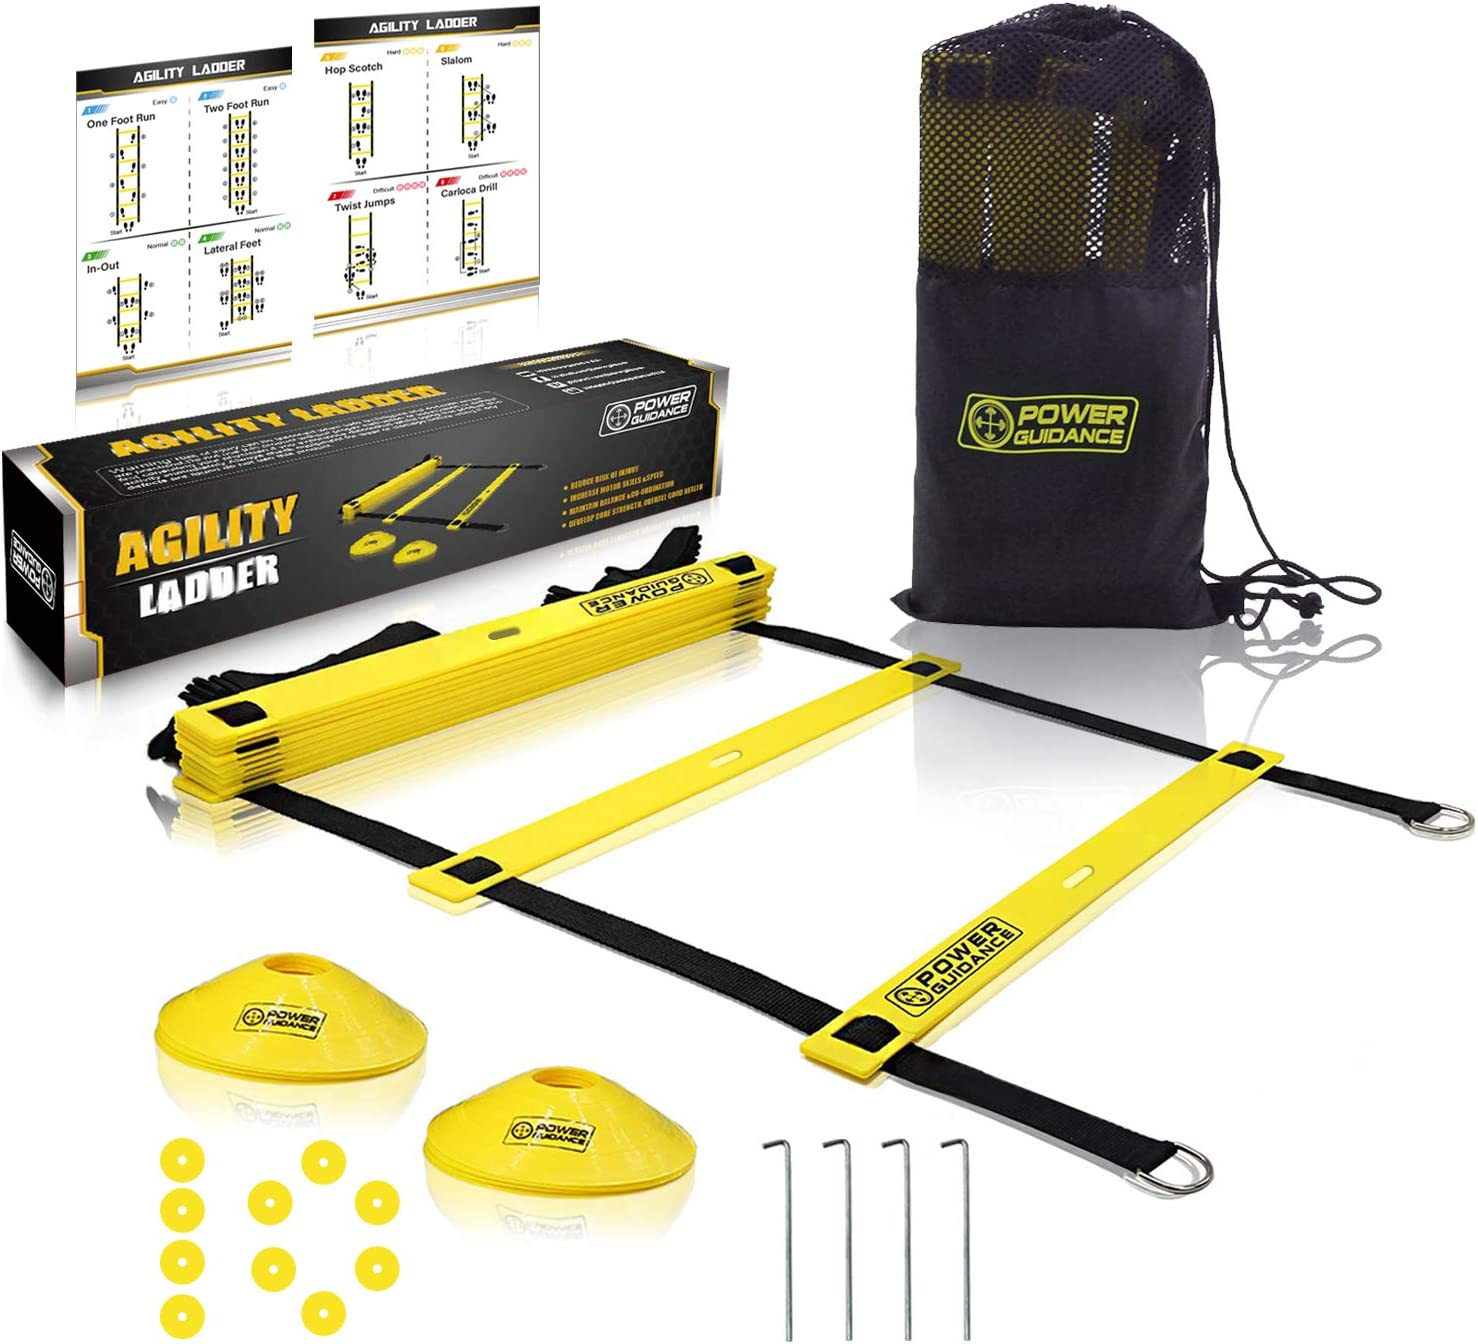 POWER GUIDANCE Agility Ladder (20 Feet) for Speed & Agility Trainning - with 12 Heavy Duty Plastic Rungs, 4 Pegs, Carry Bag & 10 Sports Cones (Yellow) : Sports & Outdoors